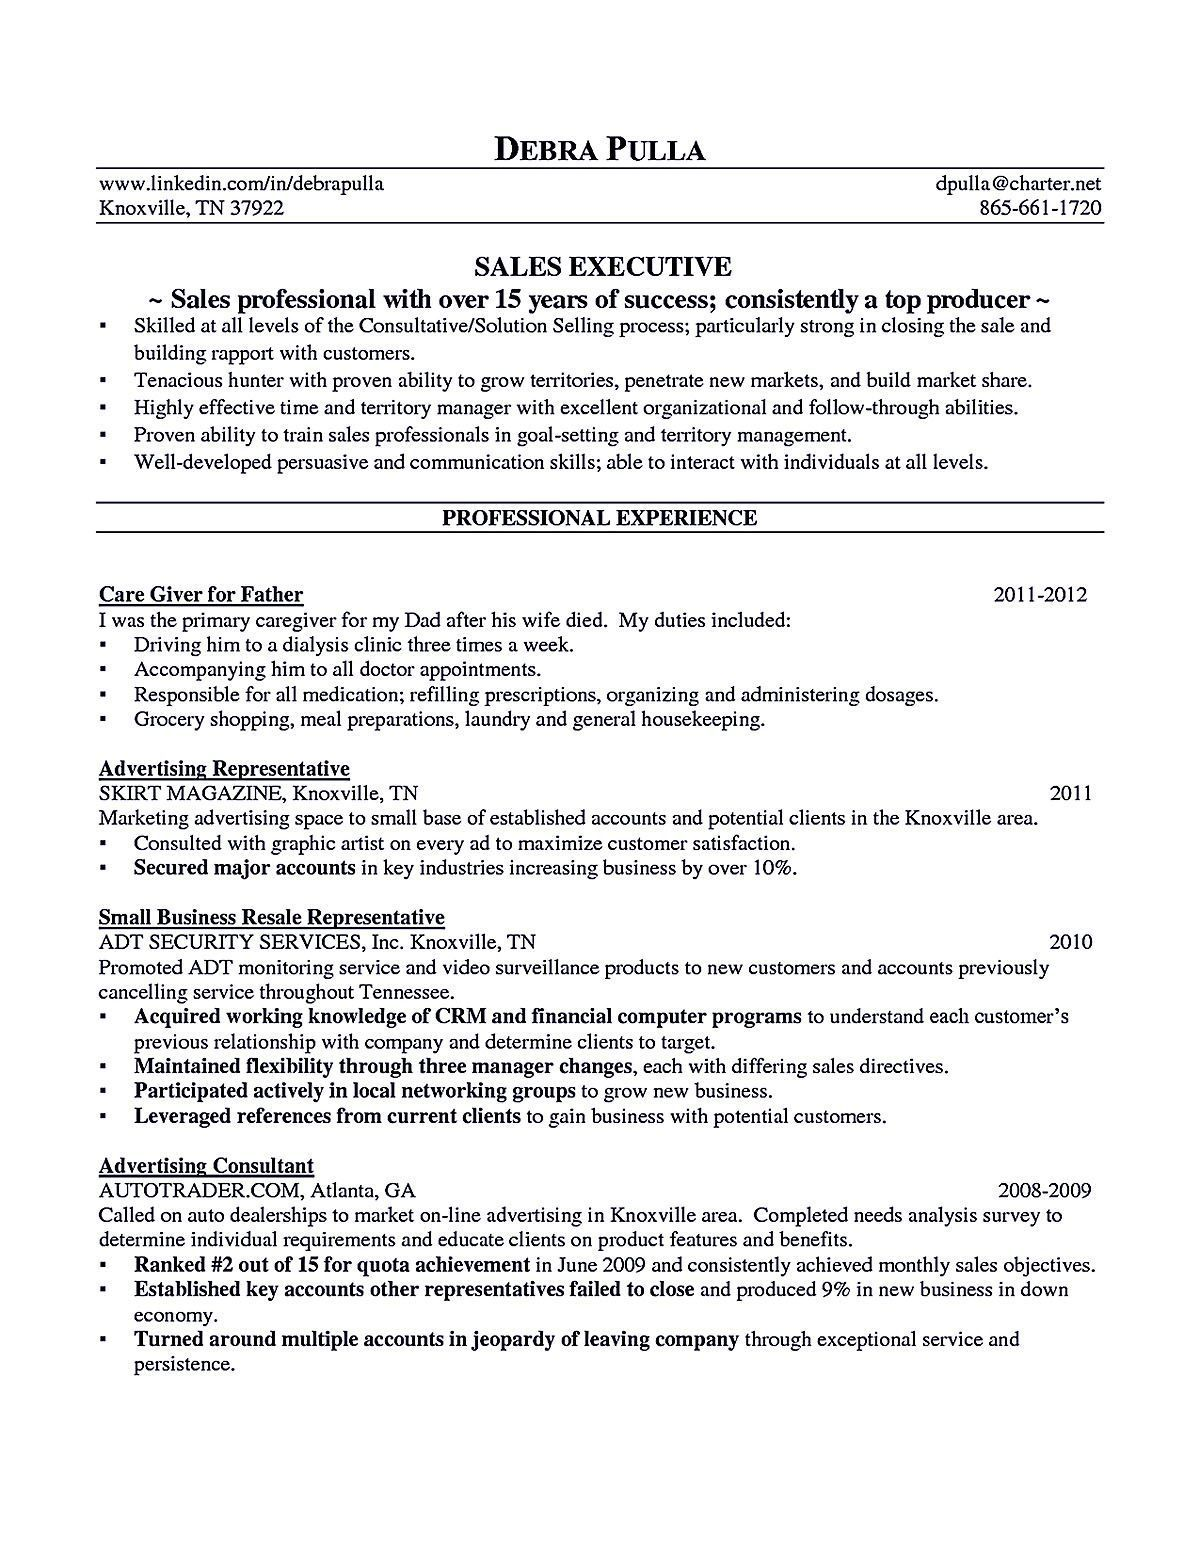 Advertising Account Executive Resume Unique Account Executive Resume Is Like Your Weapon To Get The Job You Want .